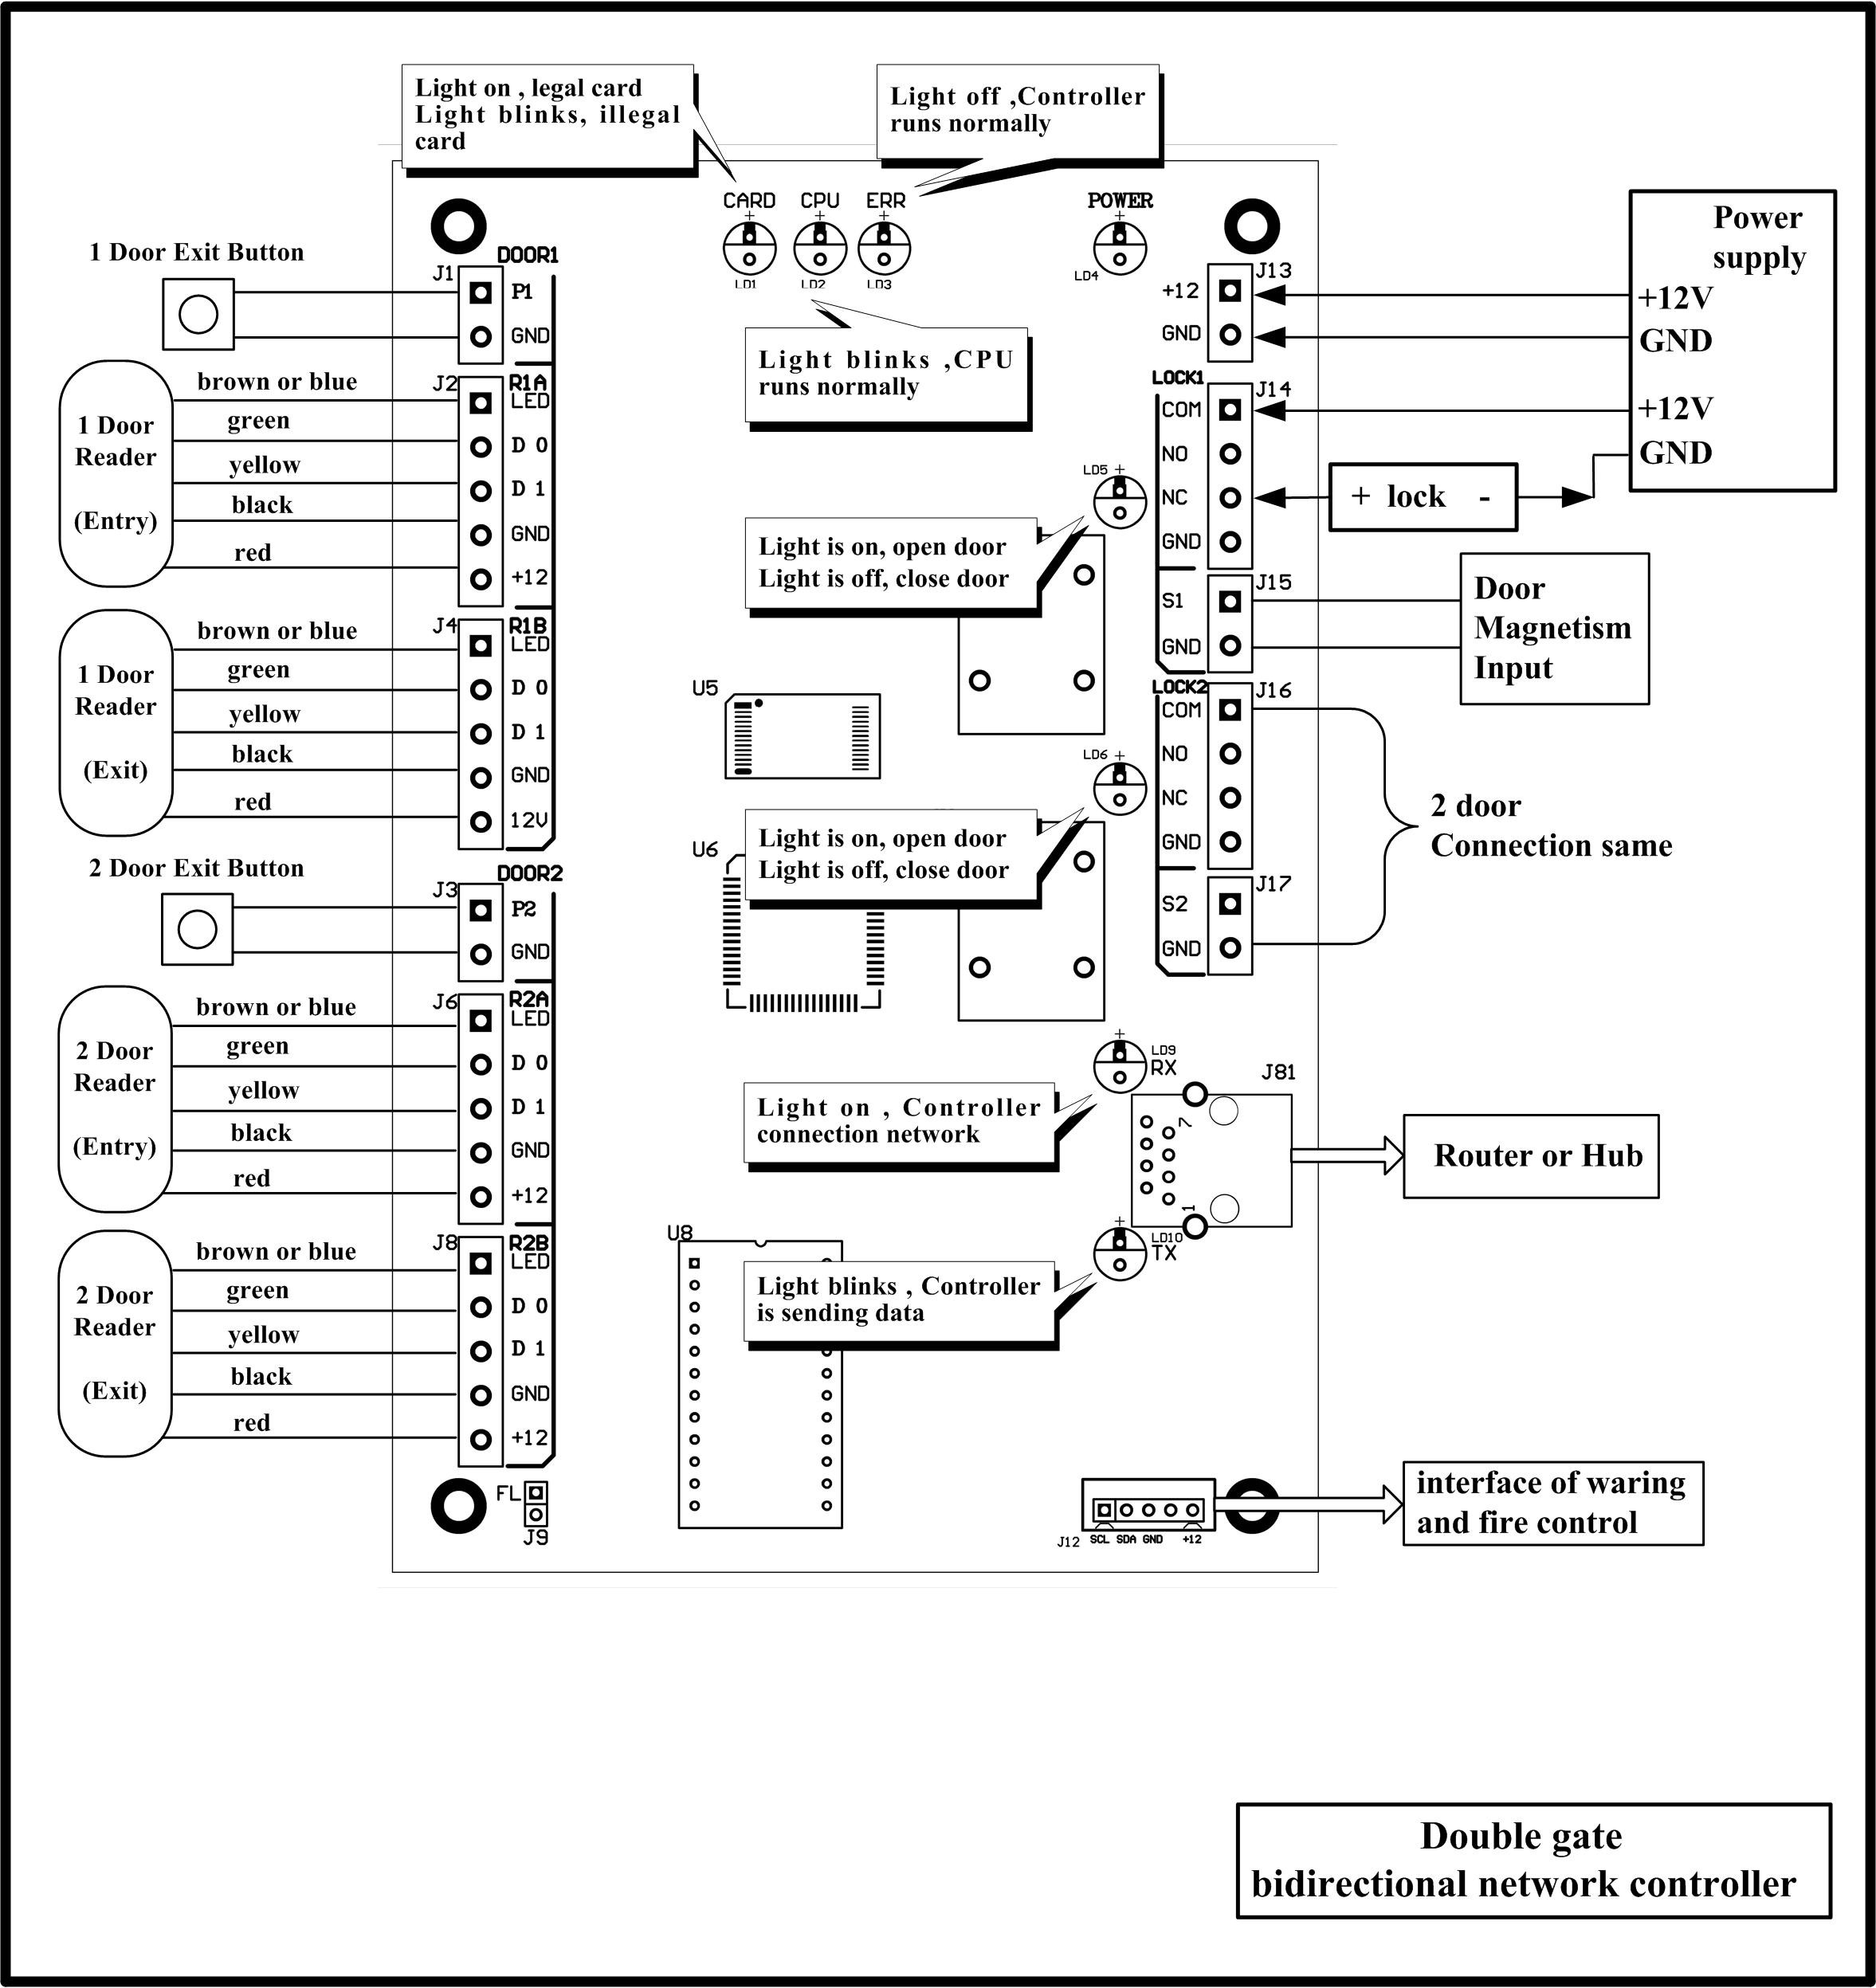 access control system wiring diagram Download-Key Card Wiring Diagram New Lenel Access Control Wiring Diagram and Beauteous In Wiring Diagram 9-k